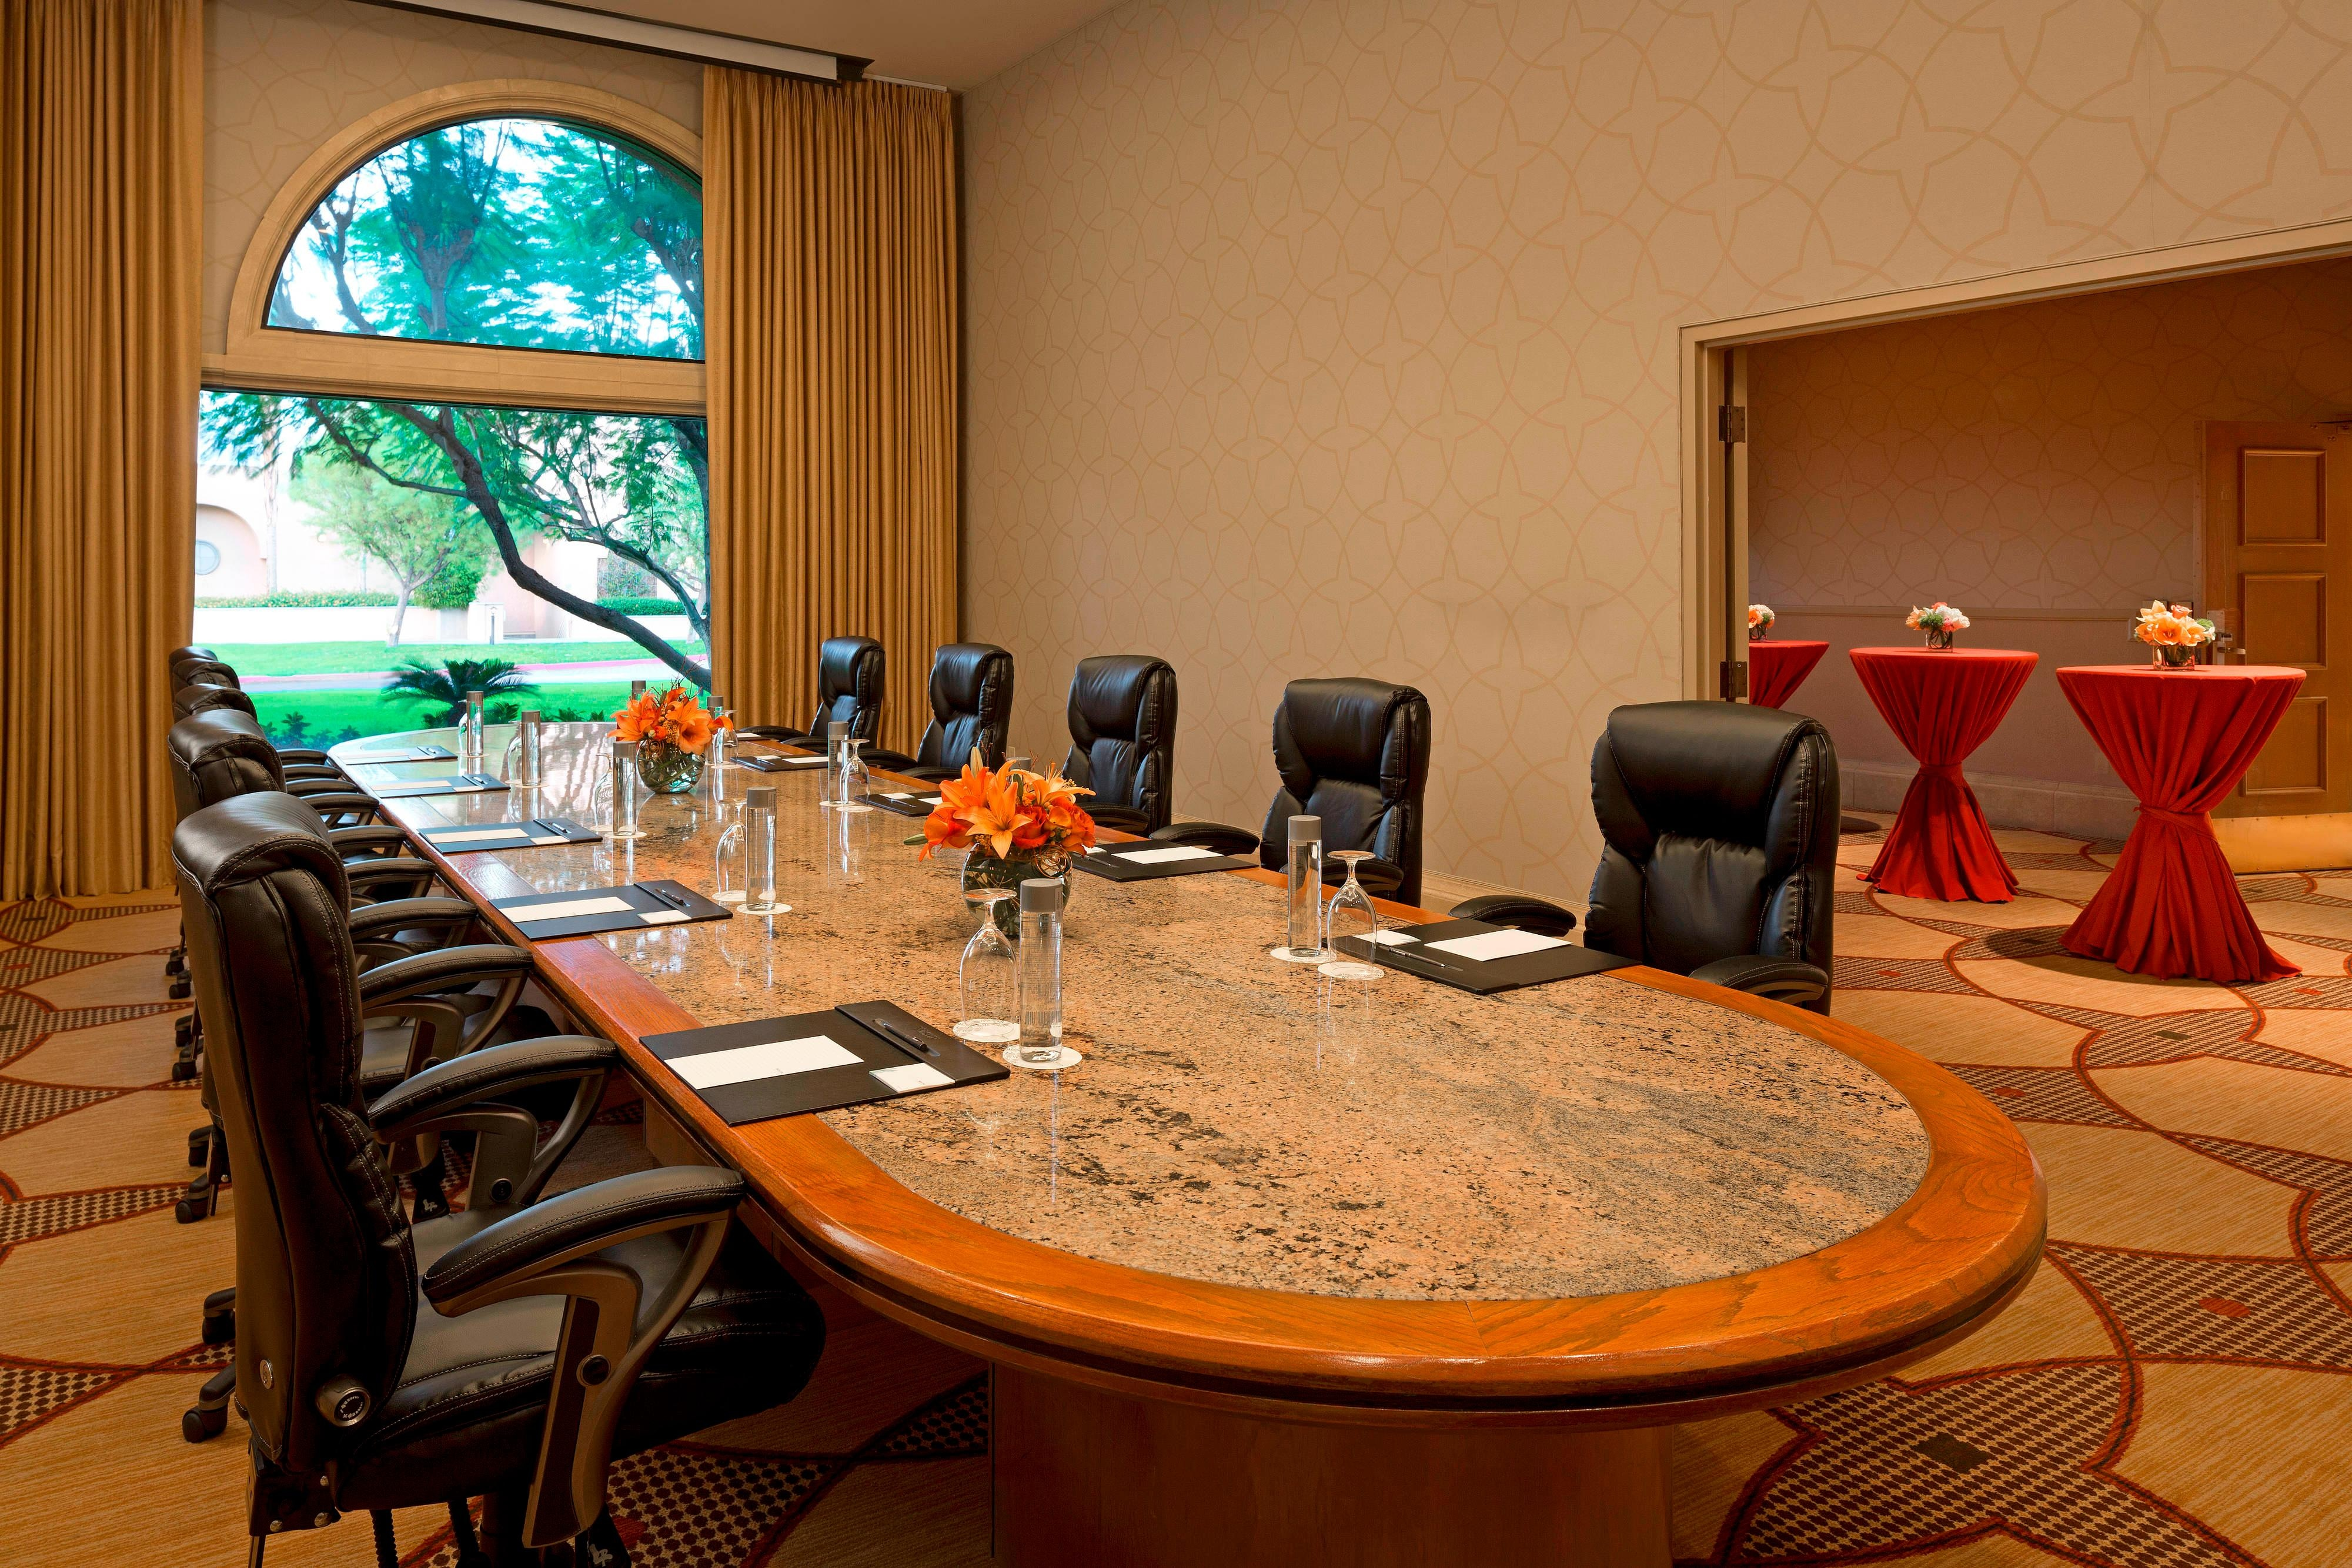 Mission Hills Boardroom